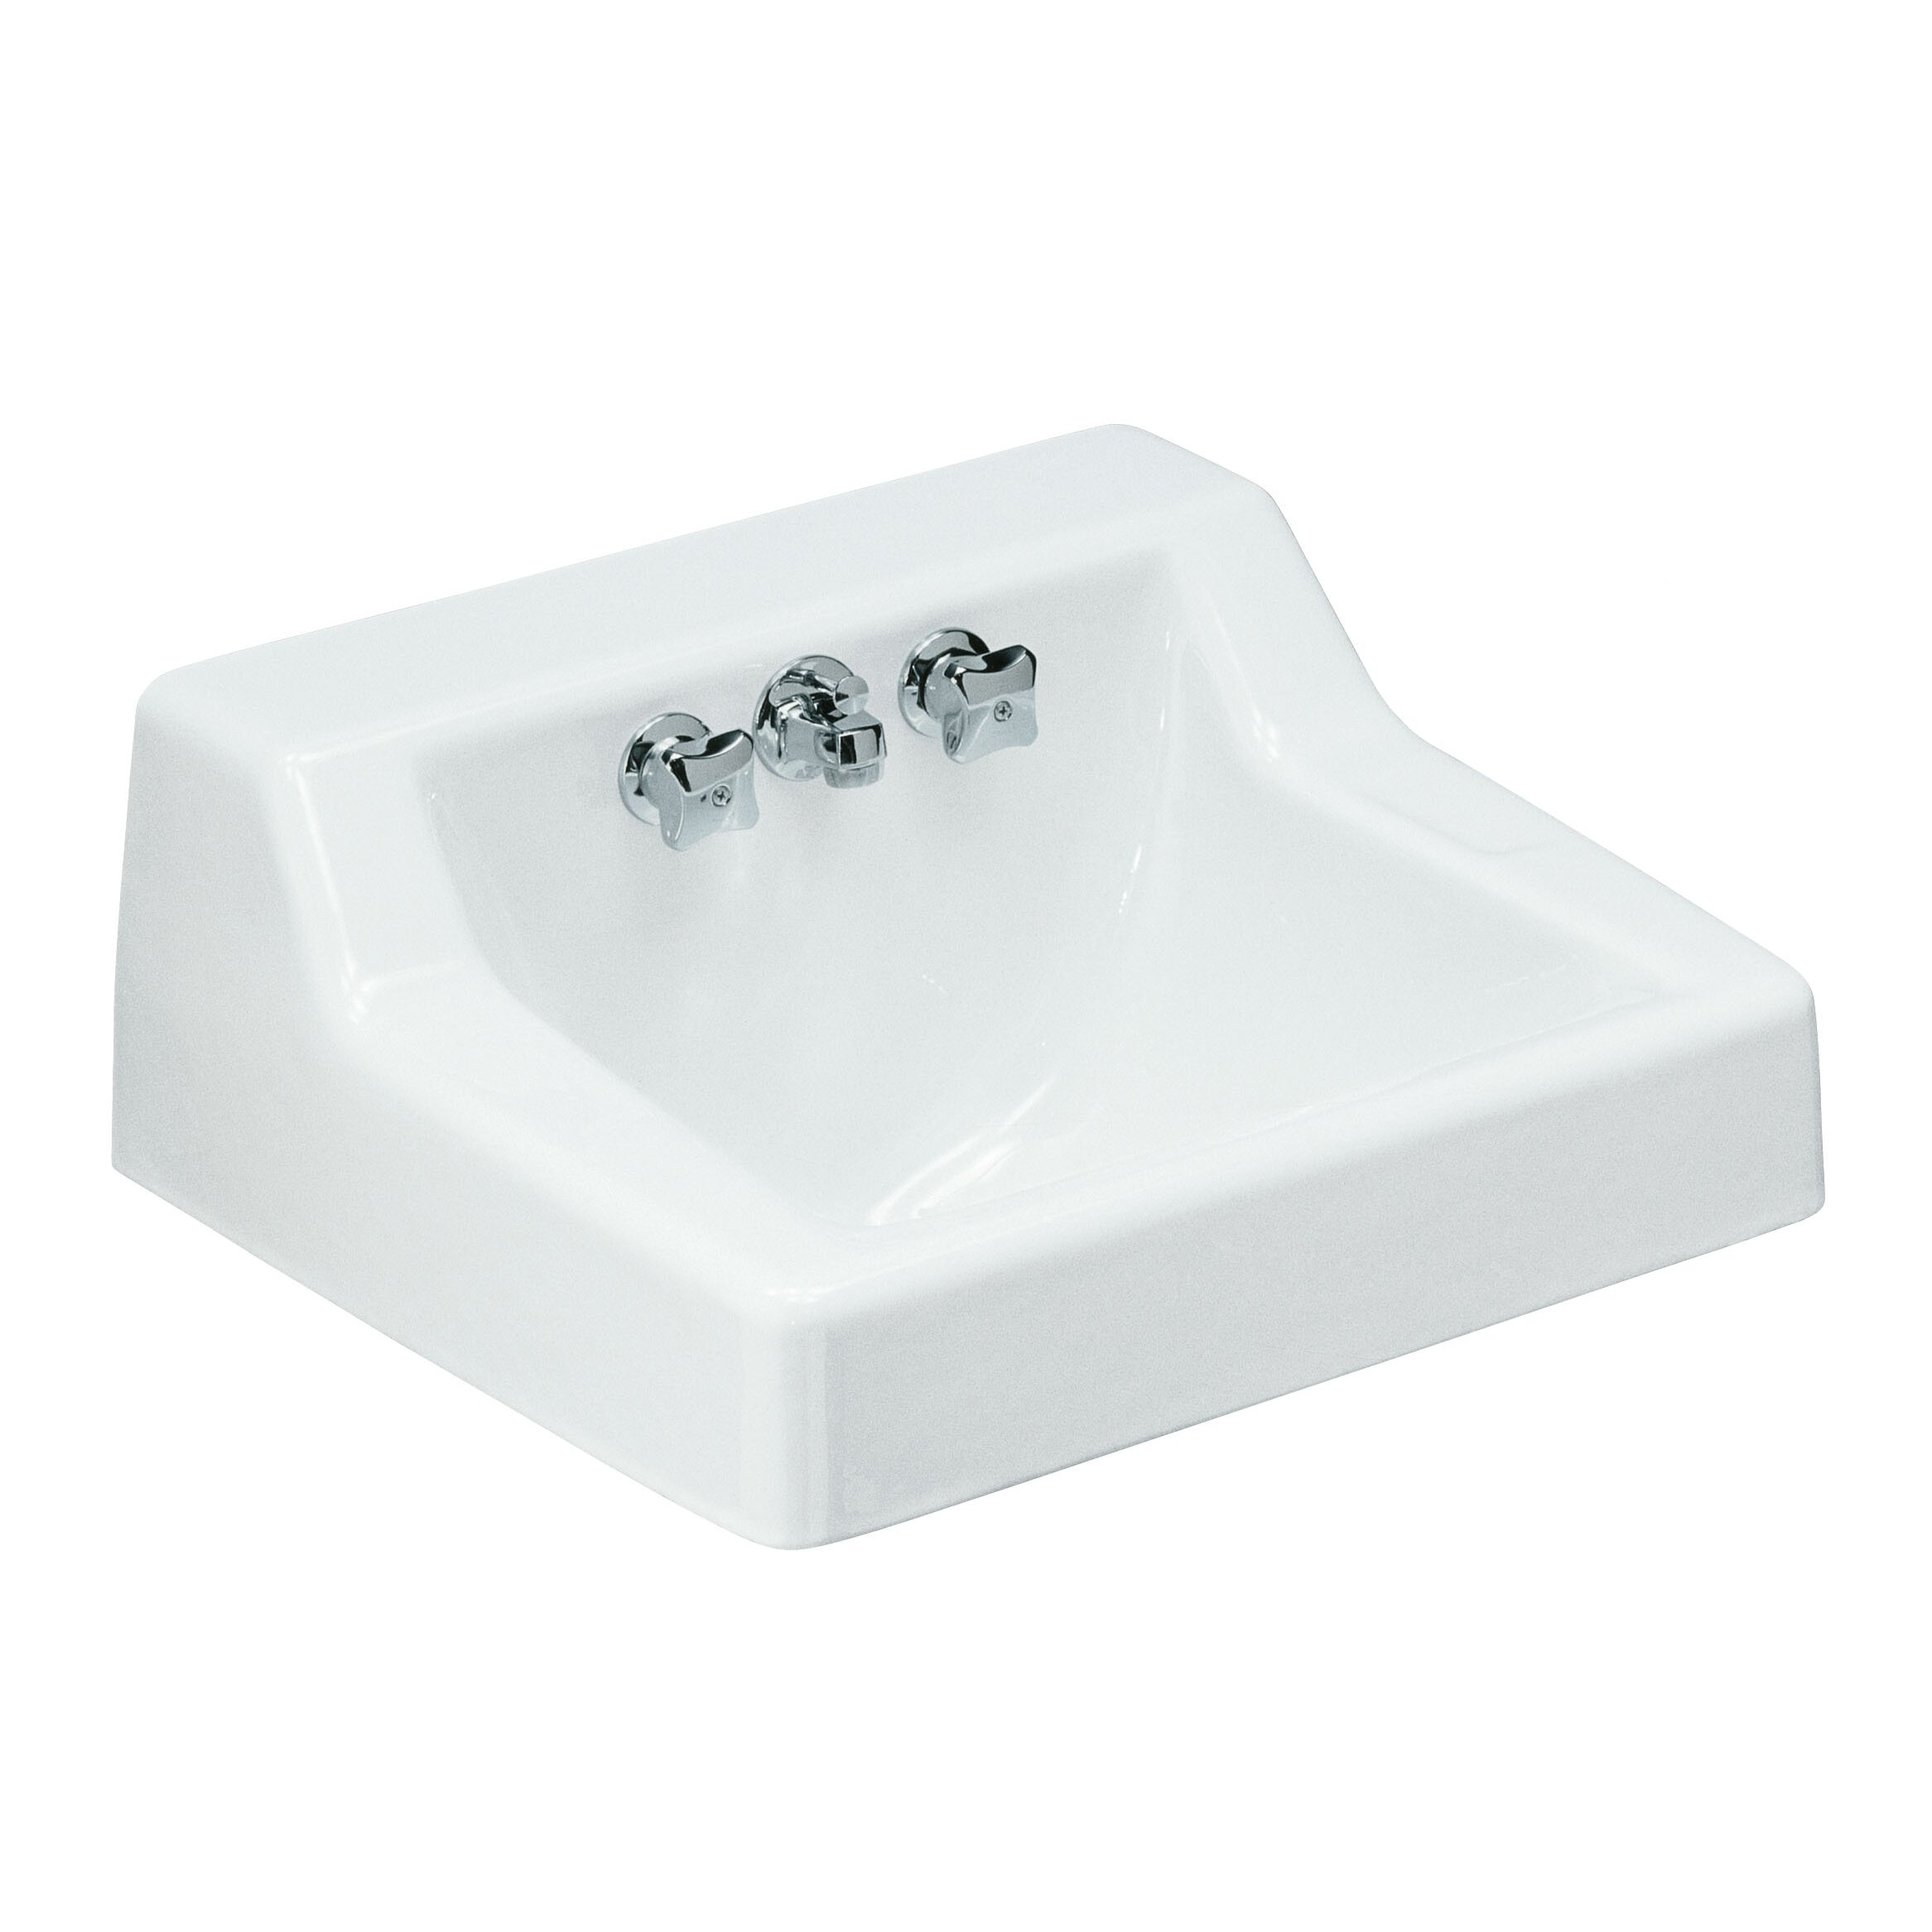 Kohler Hampton Wall Mounted Commercial Bathroom Sink With Factory Installed Faucet 22 X 19